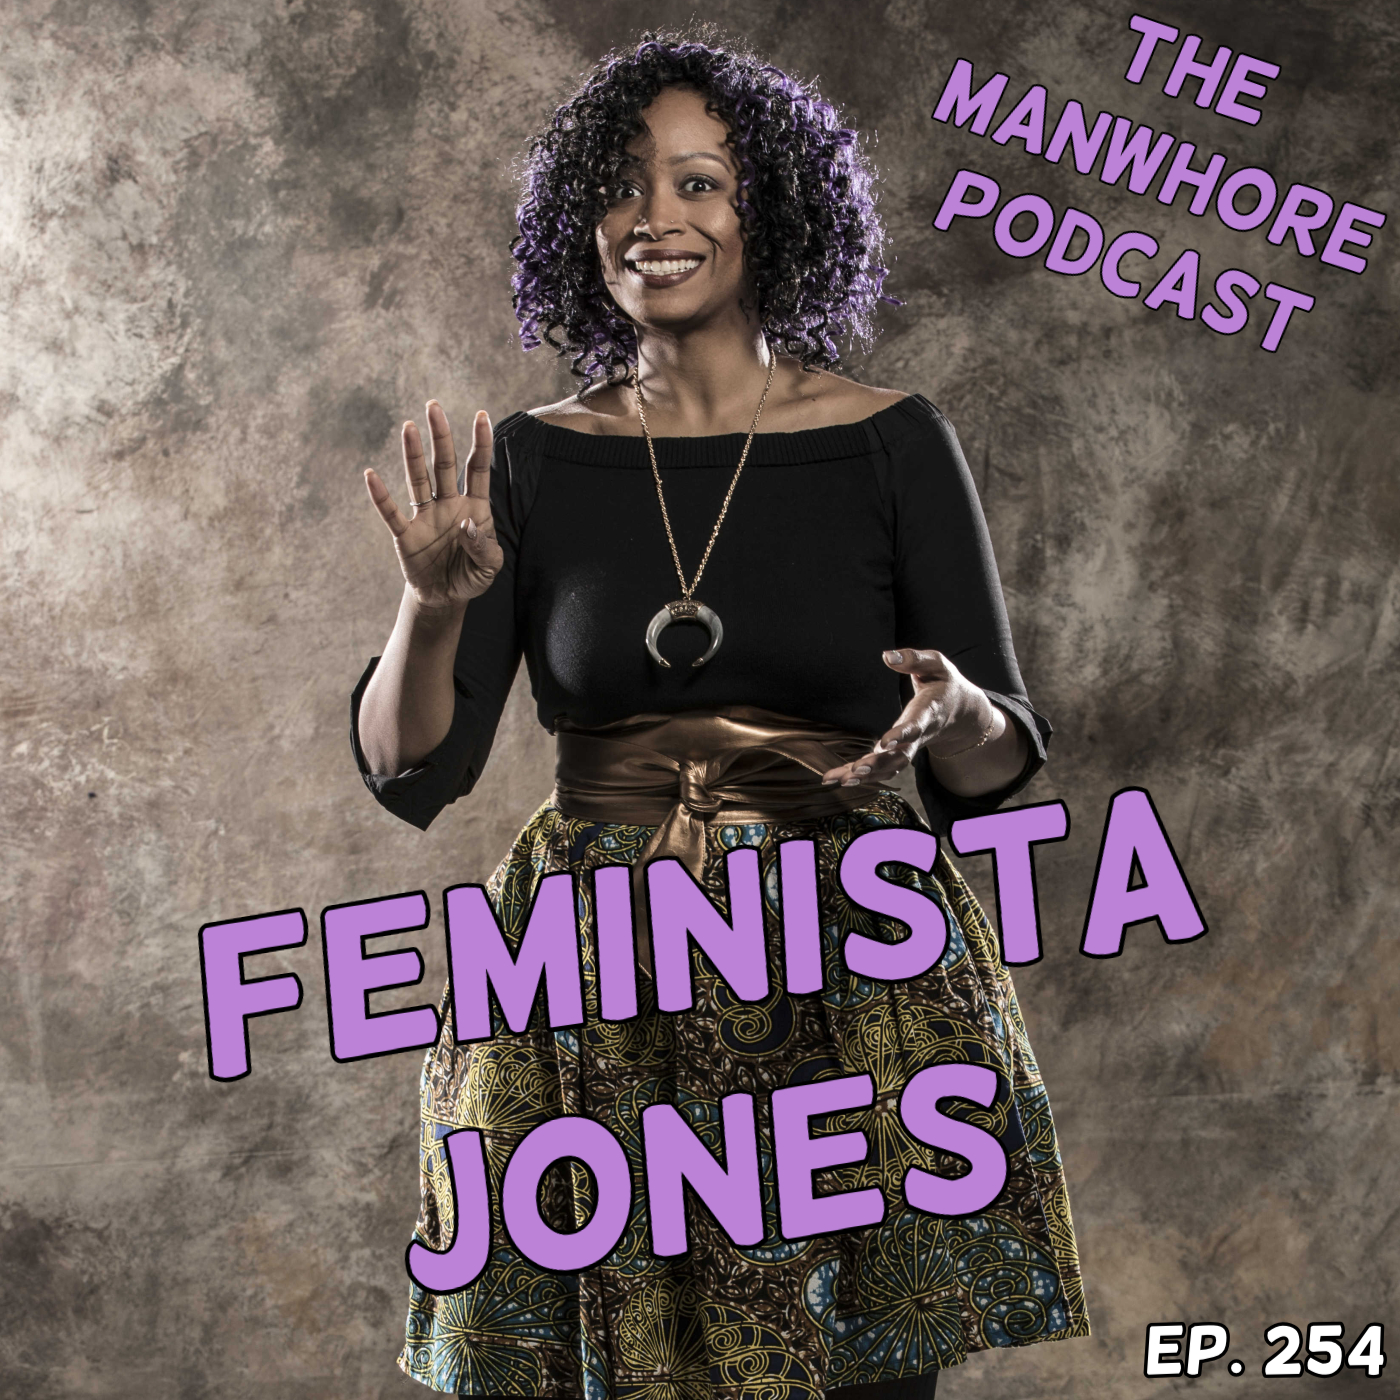 The Manwhore Podcast: A Sex-Positive Quest - Ep. 254: Feminista Jones Spills Tea on R. Kelly, Racism, and Cancel Culture